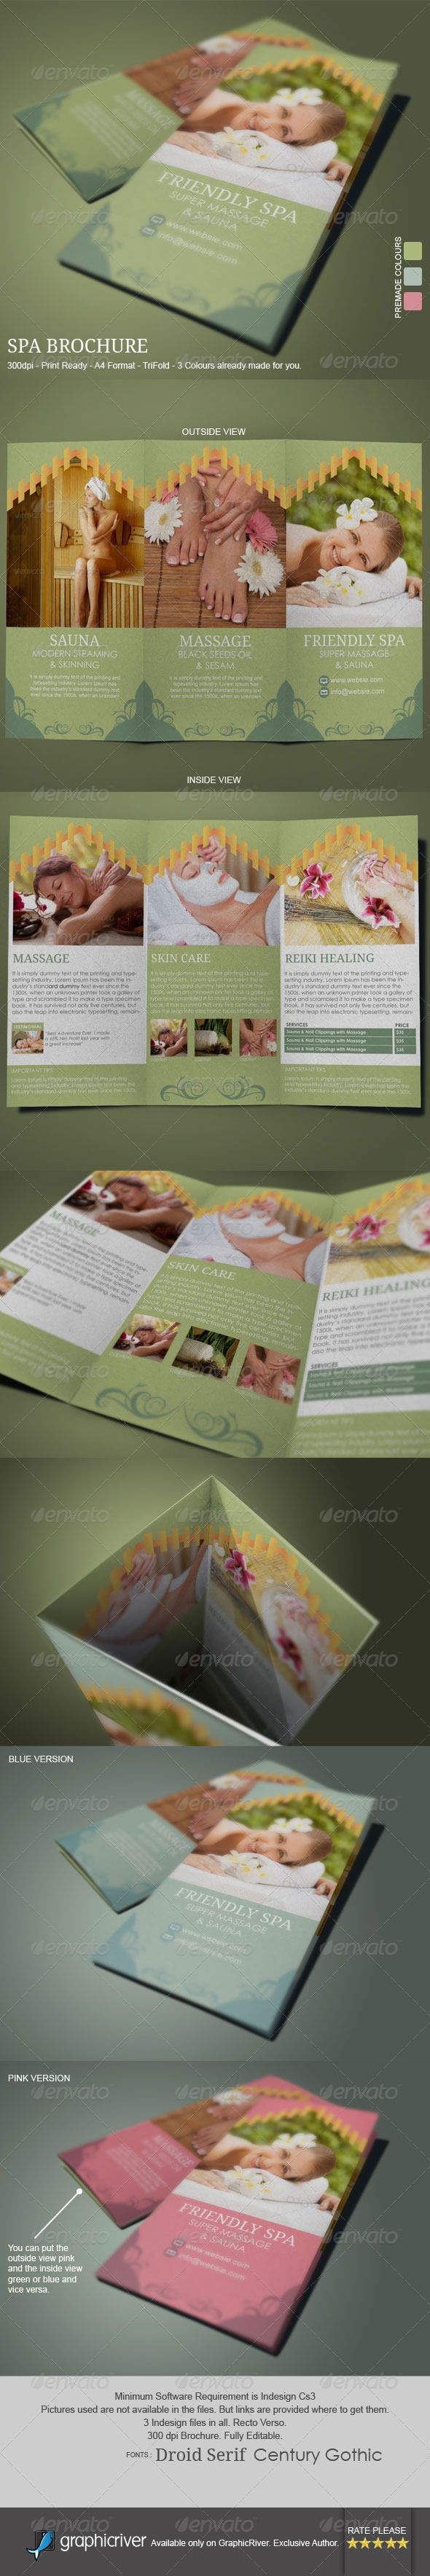 1000 images about spa brochures on pinterest for Breastfeeding brochure templates